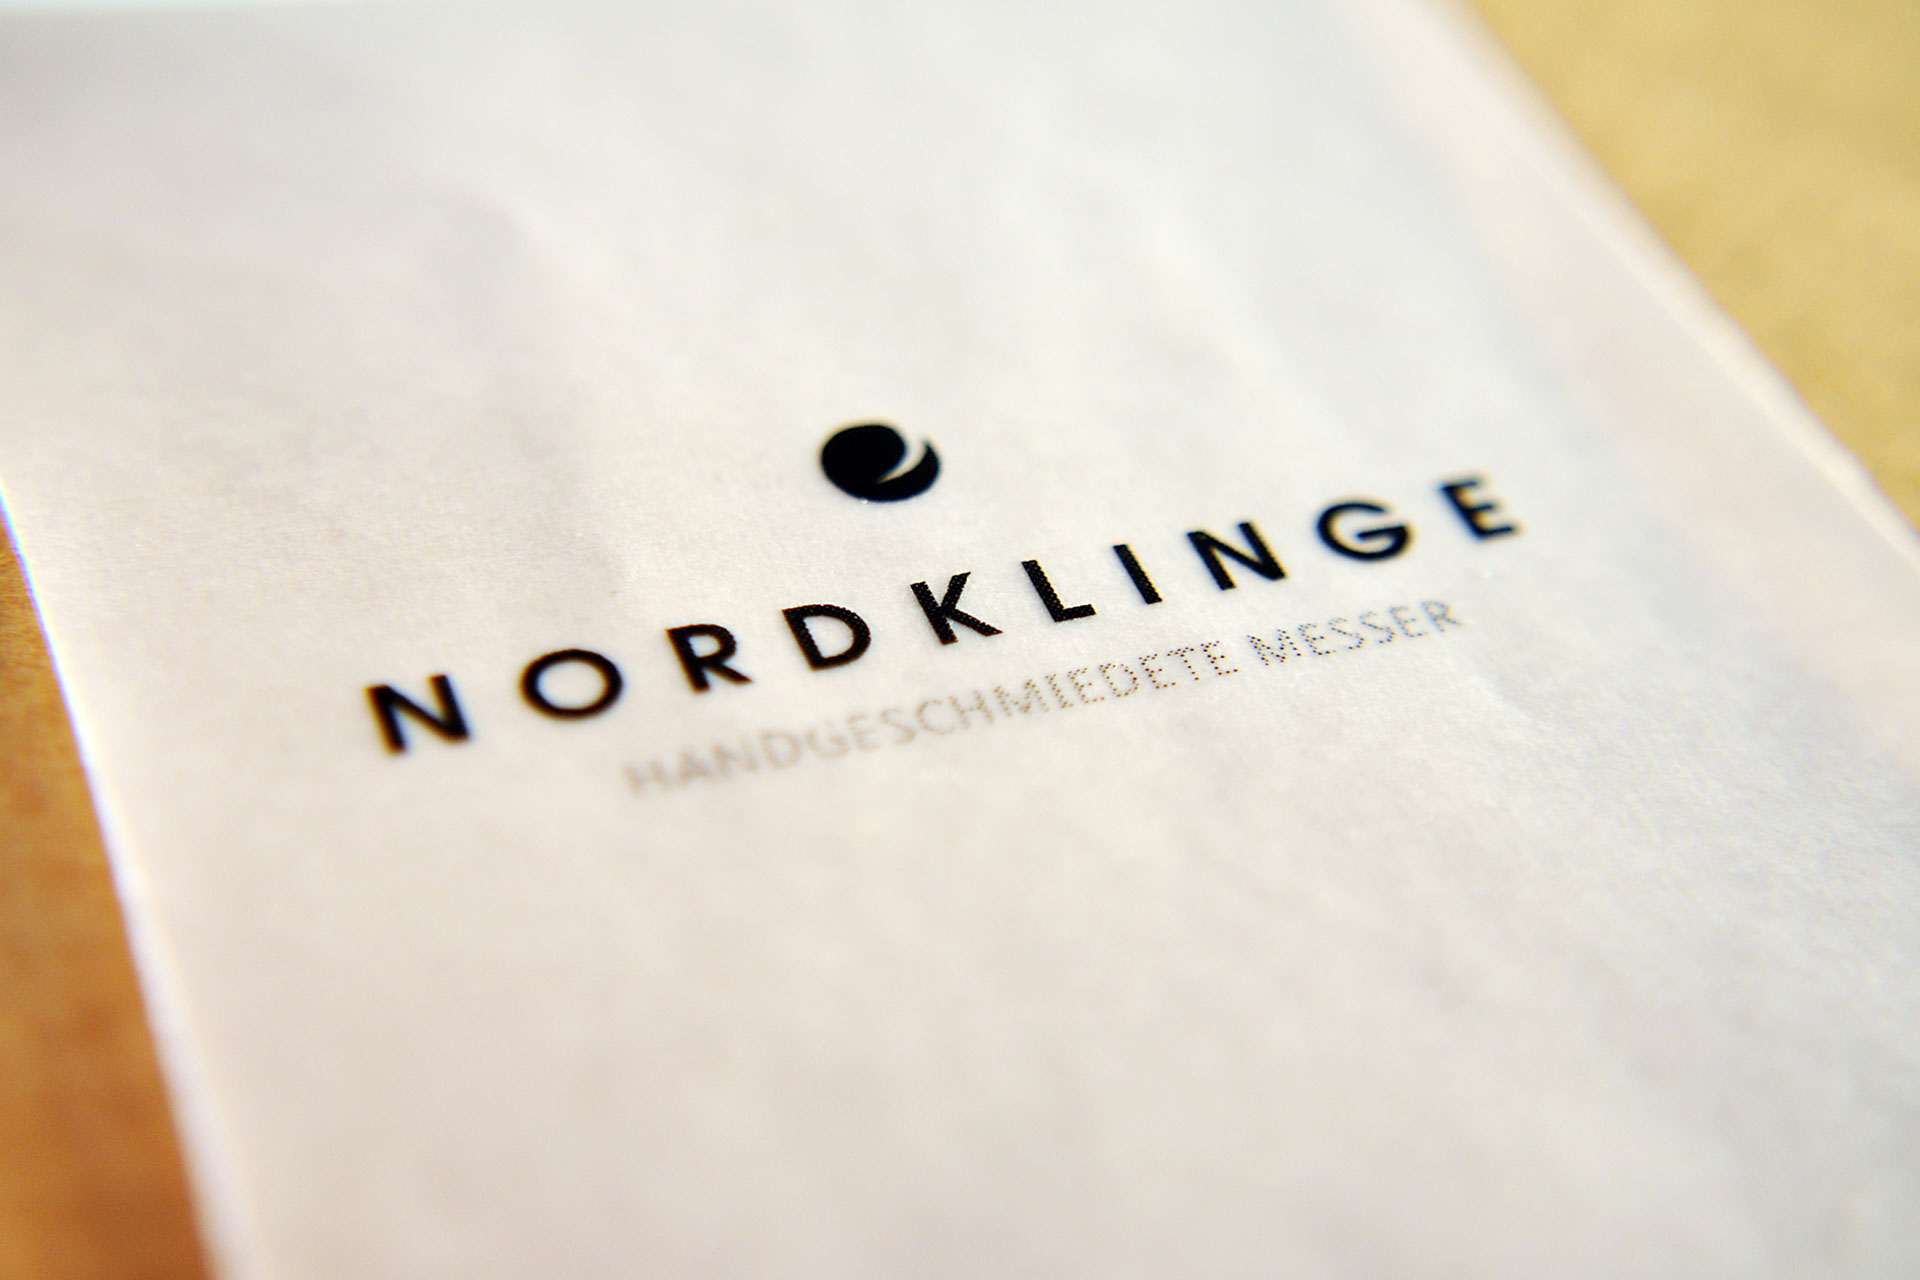 Brand design, E-Commerce and Marketing //  Client: Nordklinge // Branch: Lifestyle and homestyle